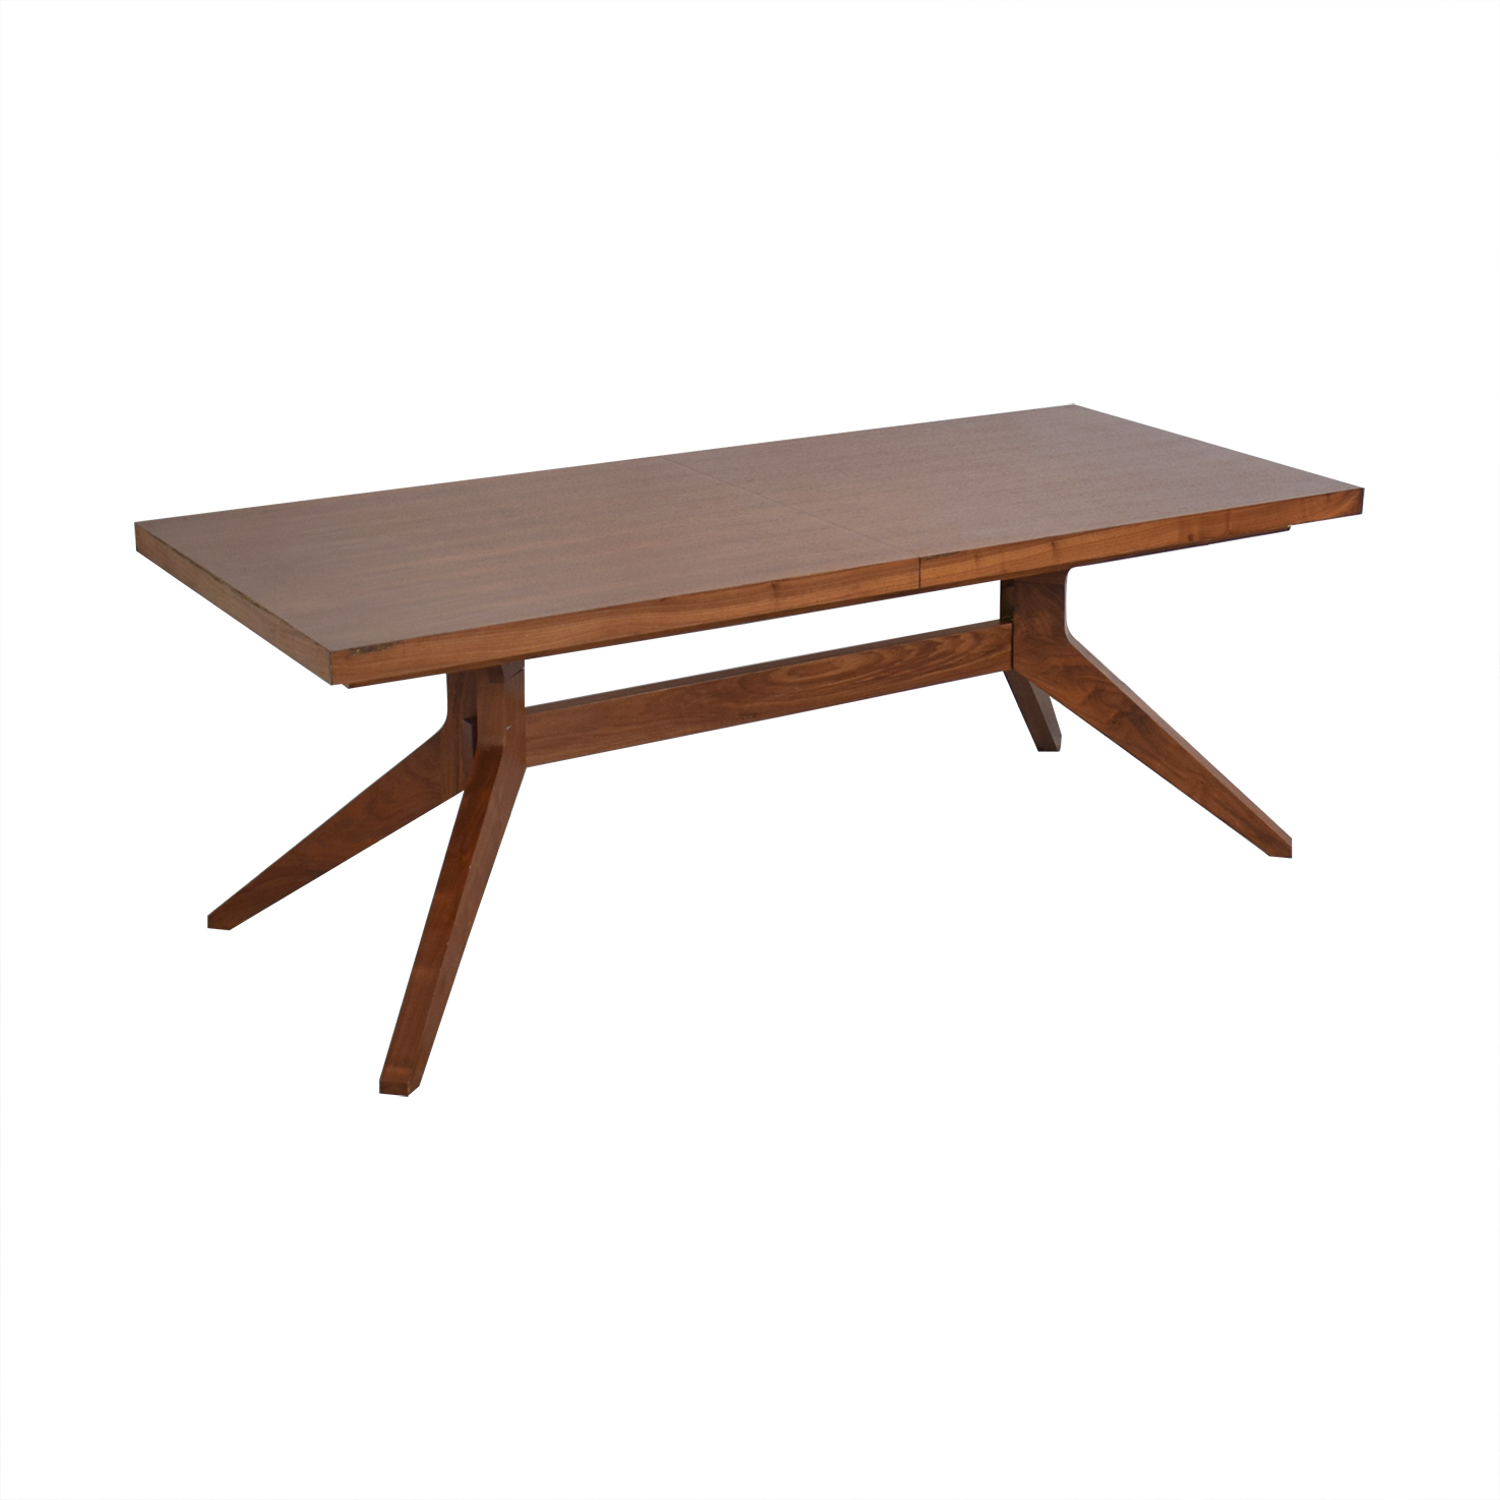 Case Matthew Hilton for Case Cross Extension Dining Table Dinner Tables